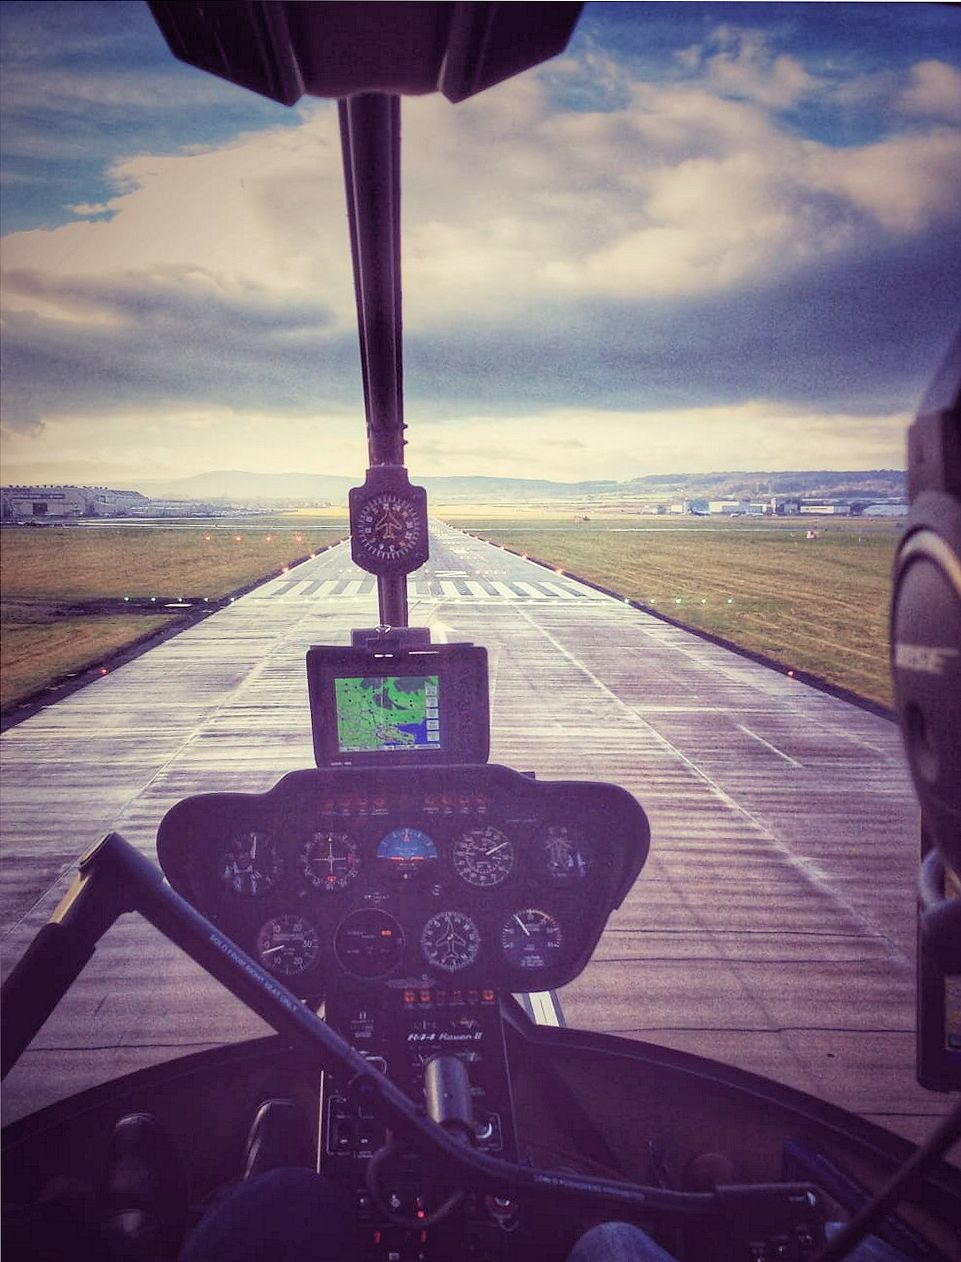 Helicopter Pilot Career Seminars - Become a Commercial Helicopter Pilot